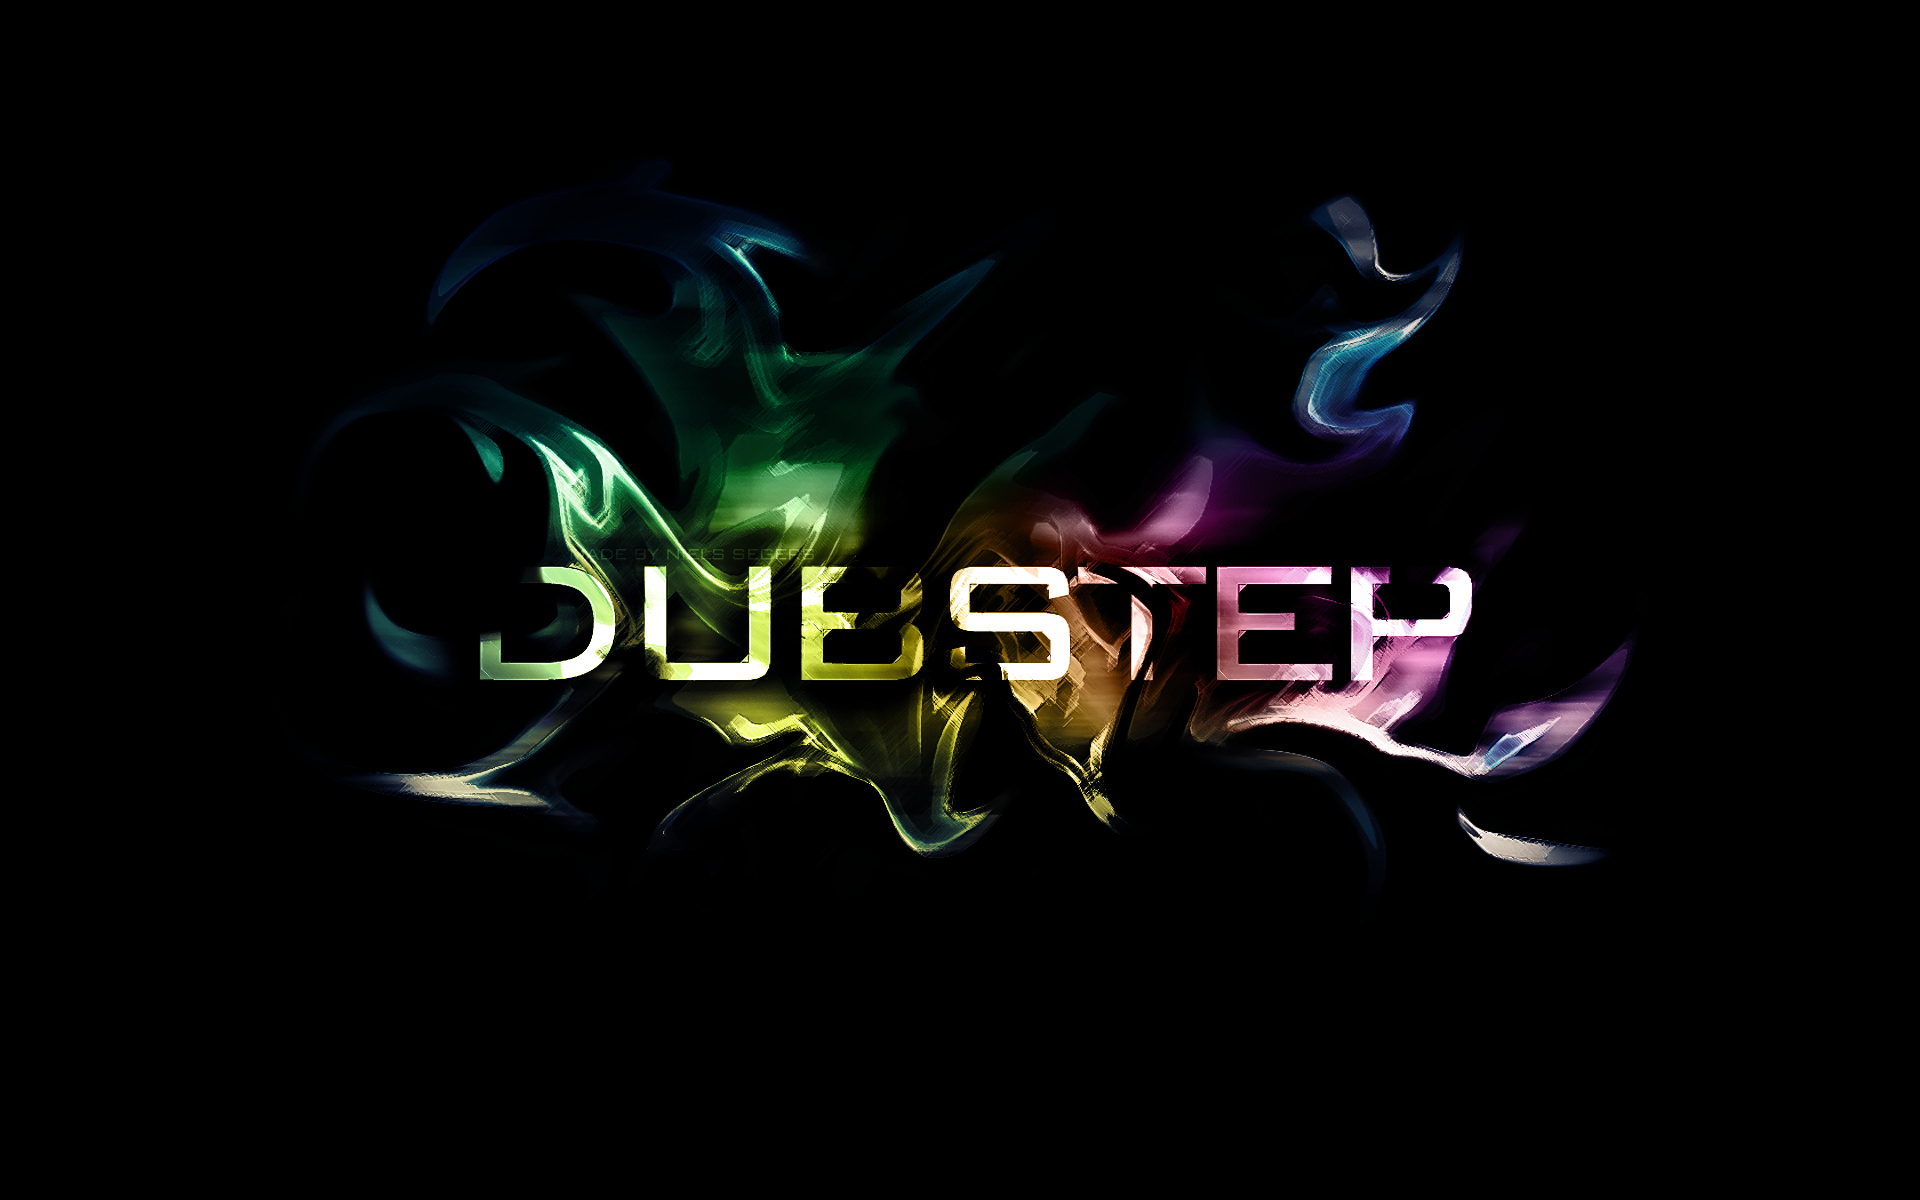 hd dubstep wallpaper 1920x1200 28715